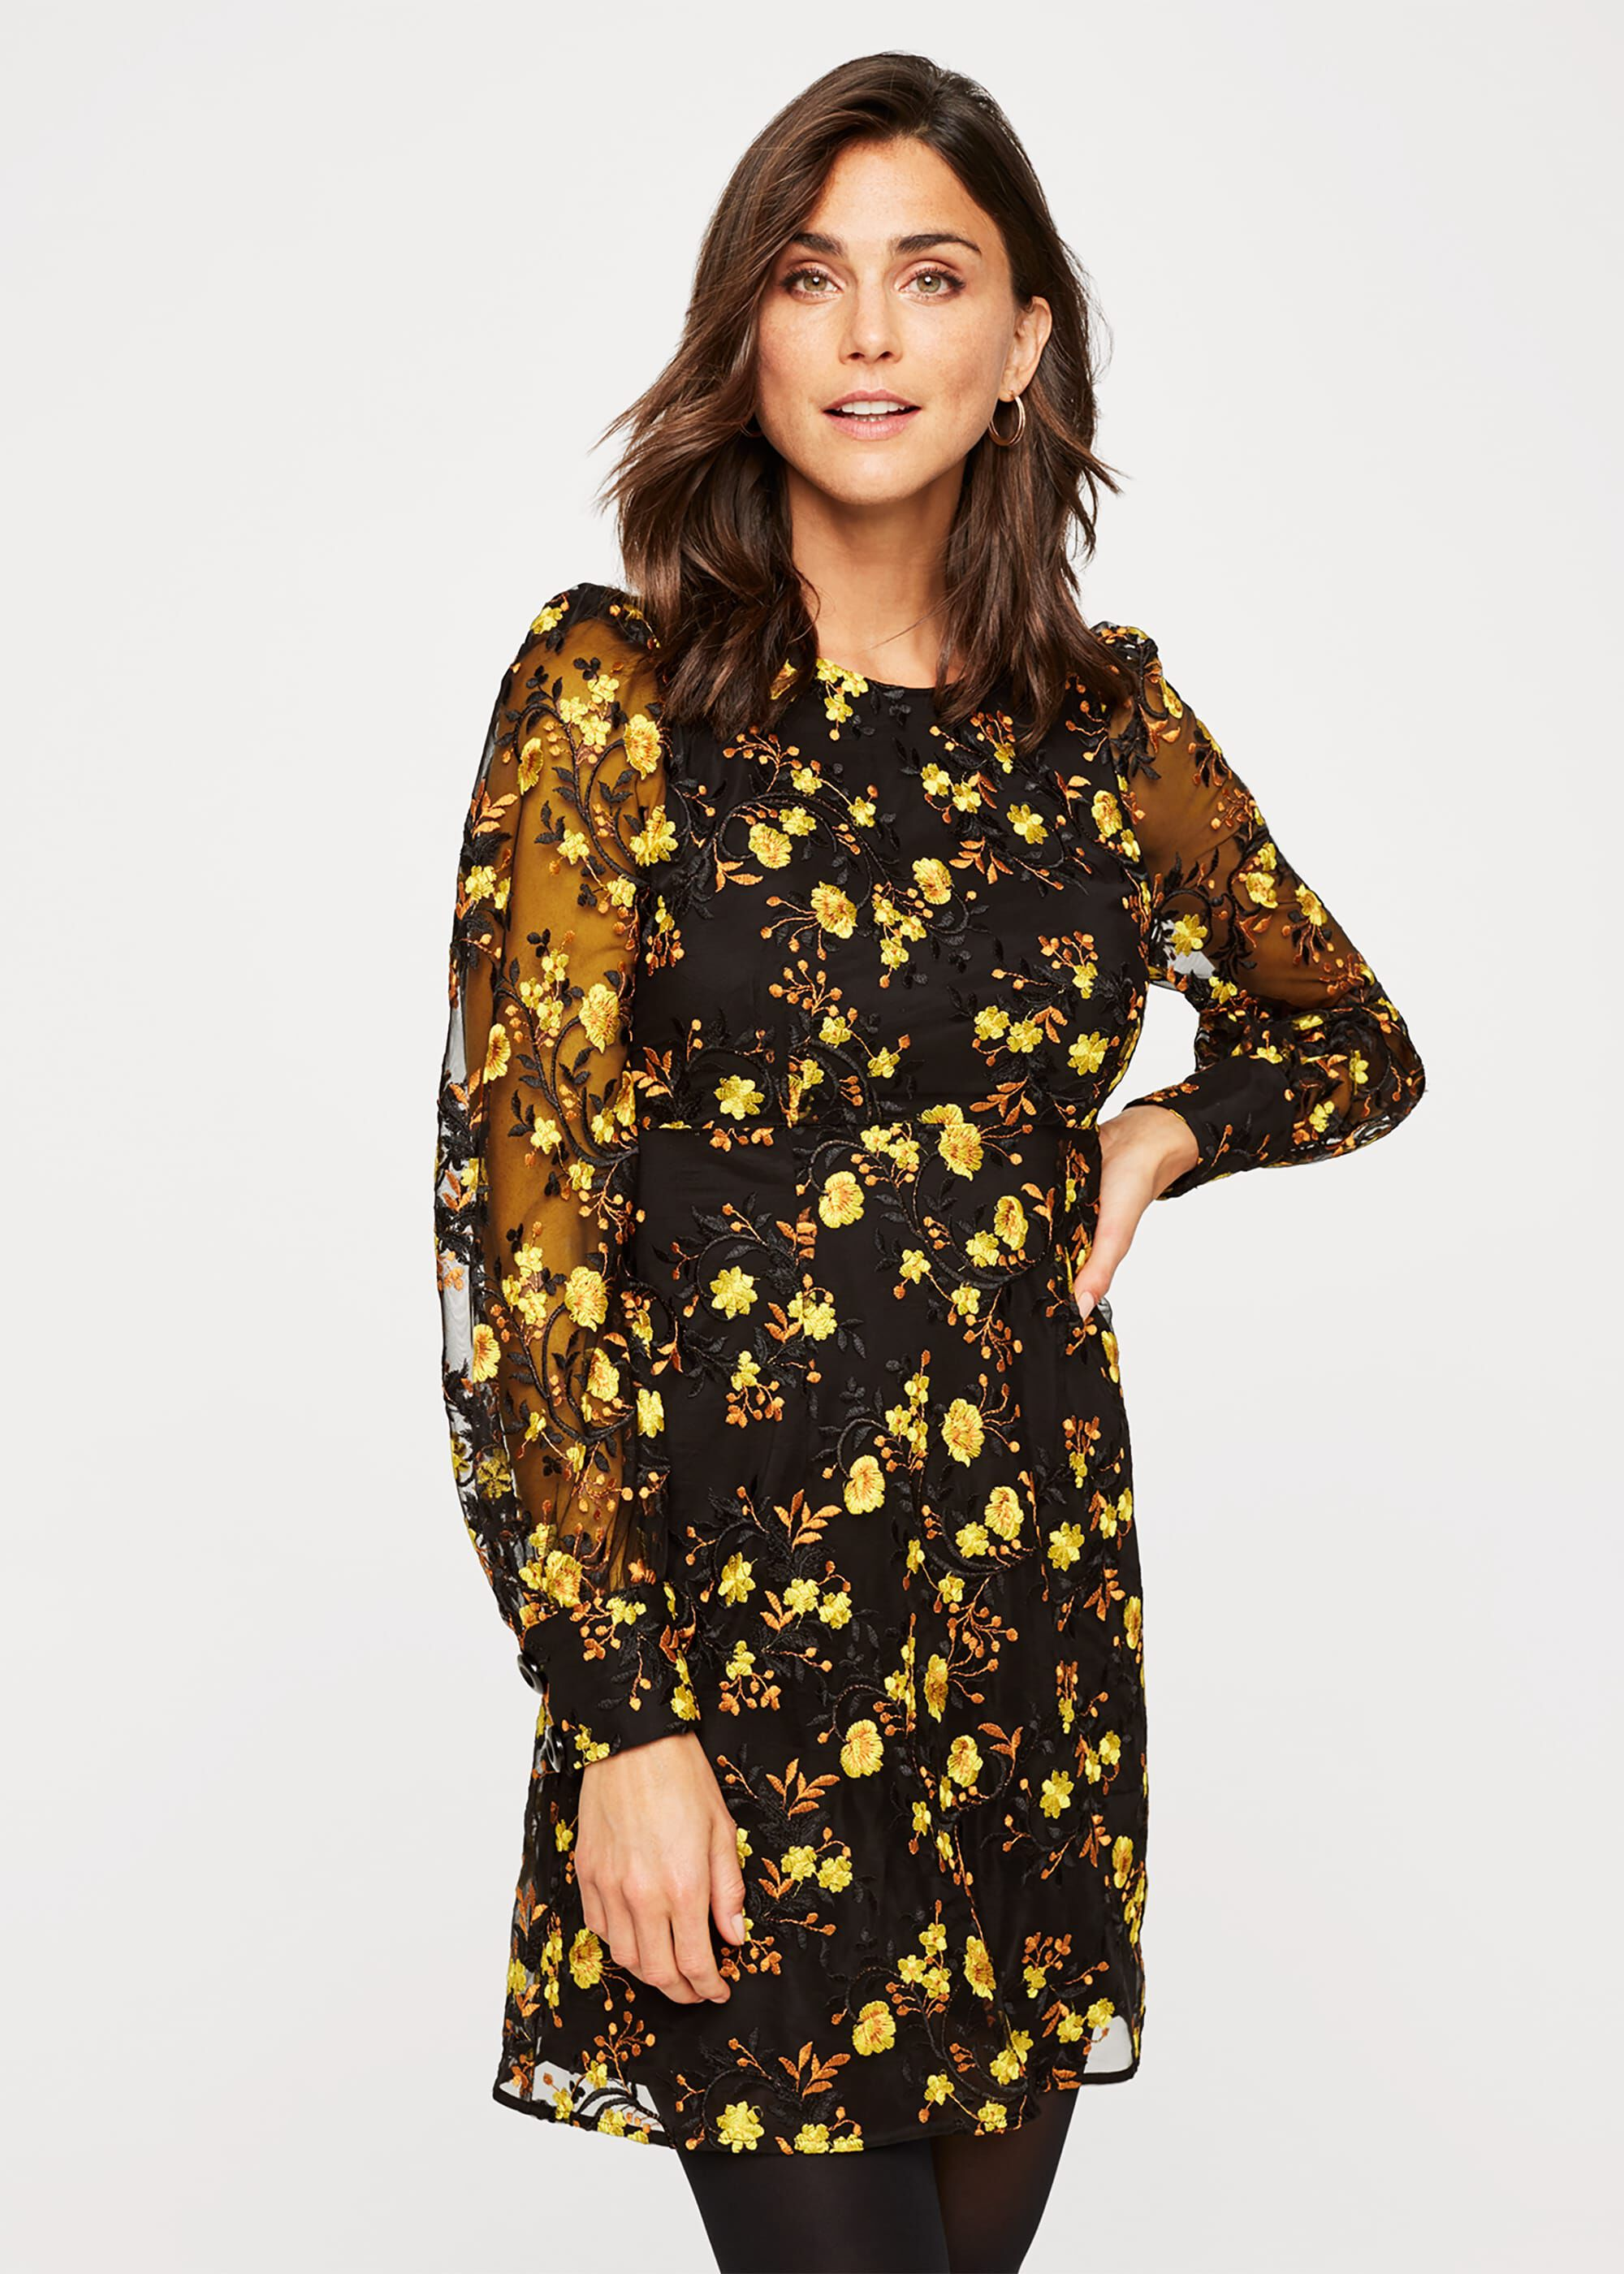 Damsel in a Dress Lovell Embroidered Dress, Black, Occasion Dress